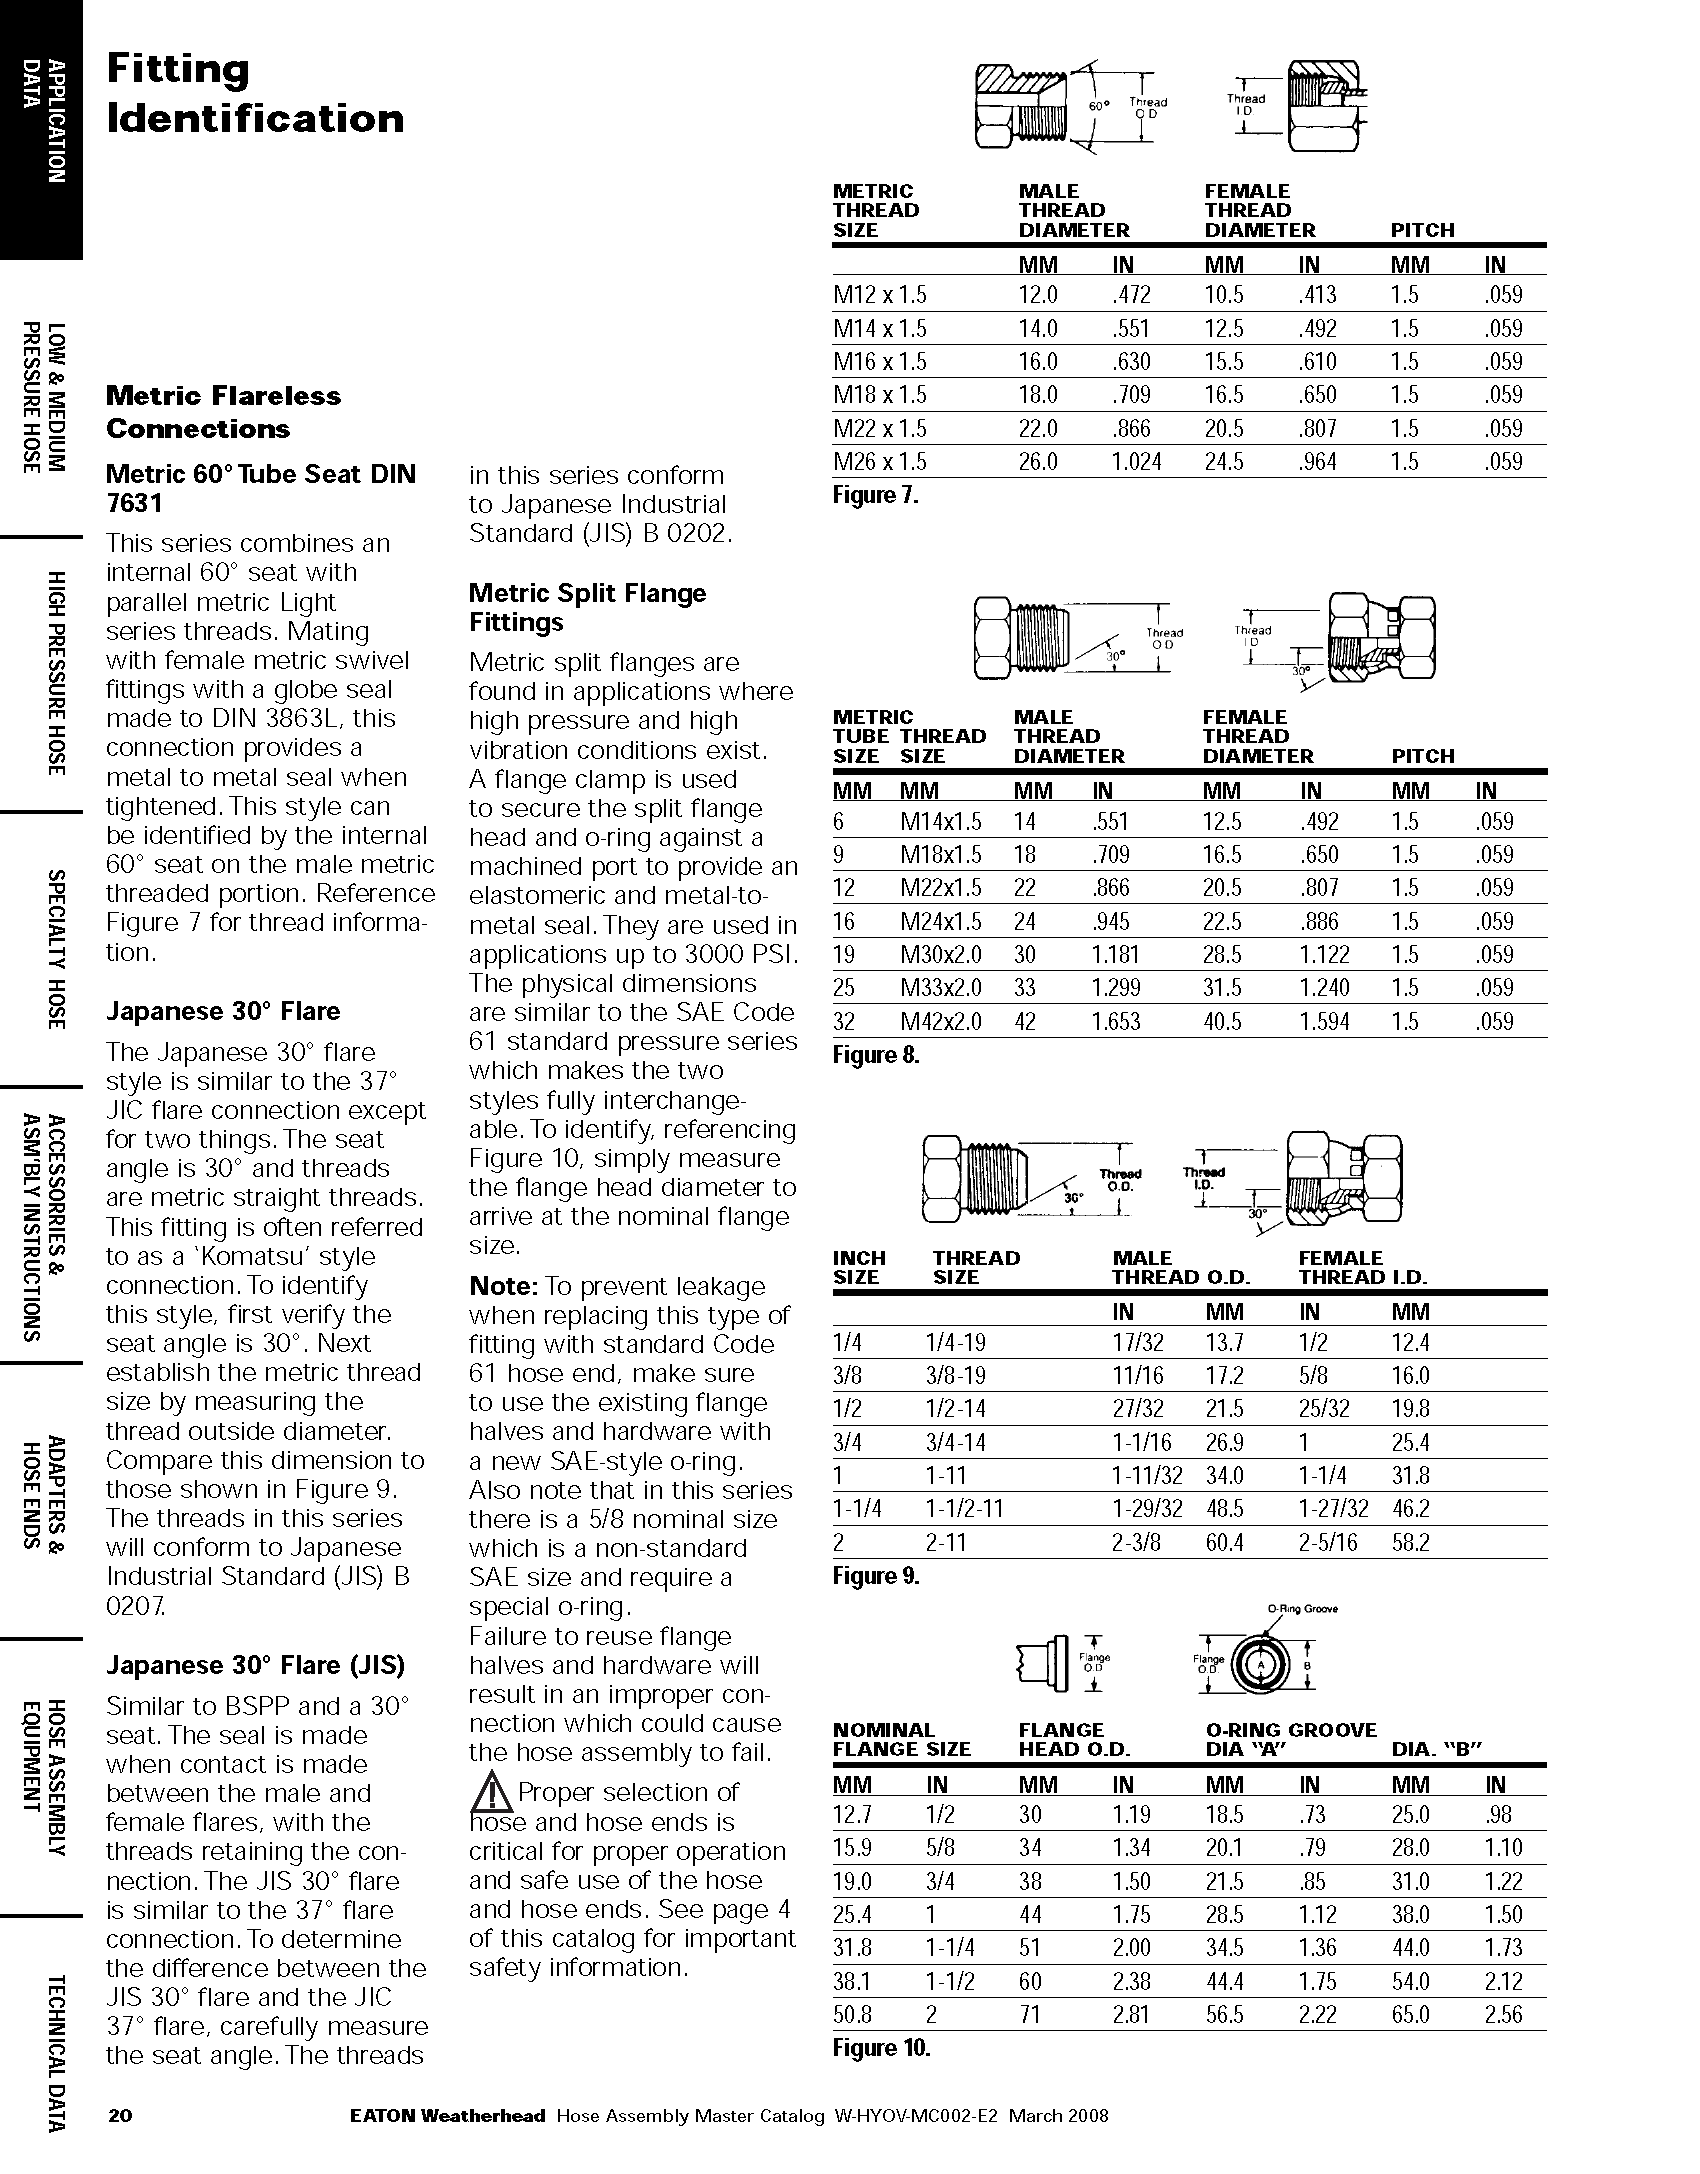 Hose selection guide Page 5